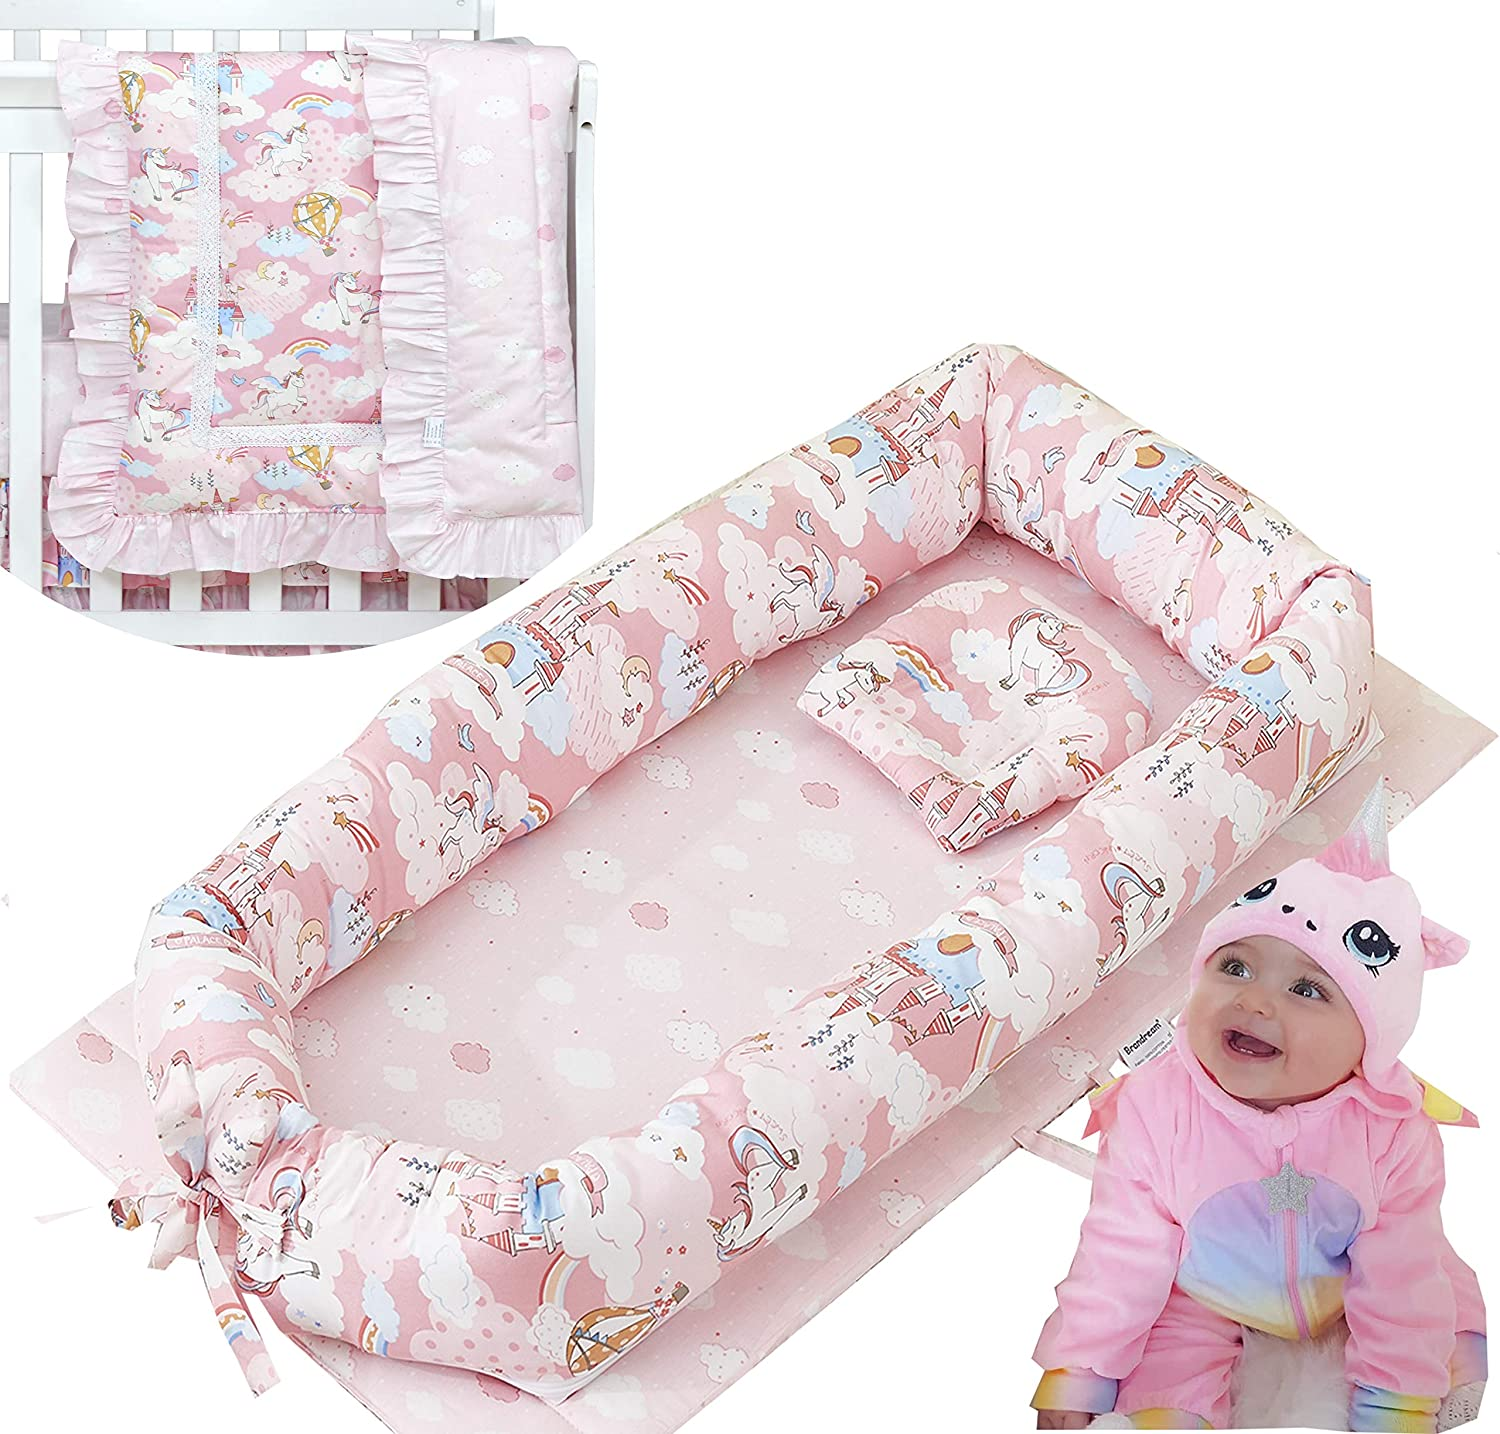 Branadream Baby Girls Nest Bed Unicorn, Pink Newborn Lounger with Comforter Portable Baby Bassinet Crib for Travel/Bedroom Perfect for Co-Sleeping 100% Cotton Breathable & Hypoallergenic